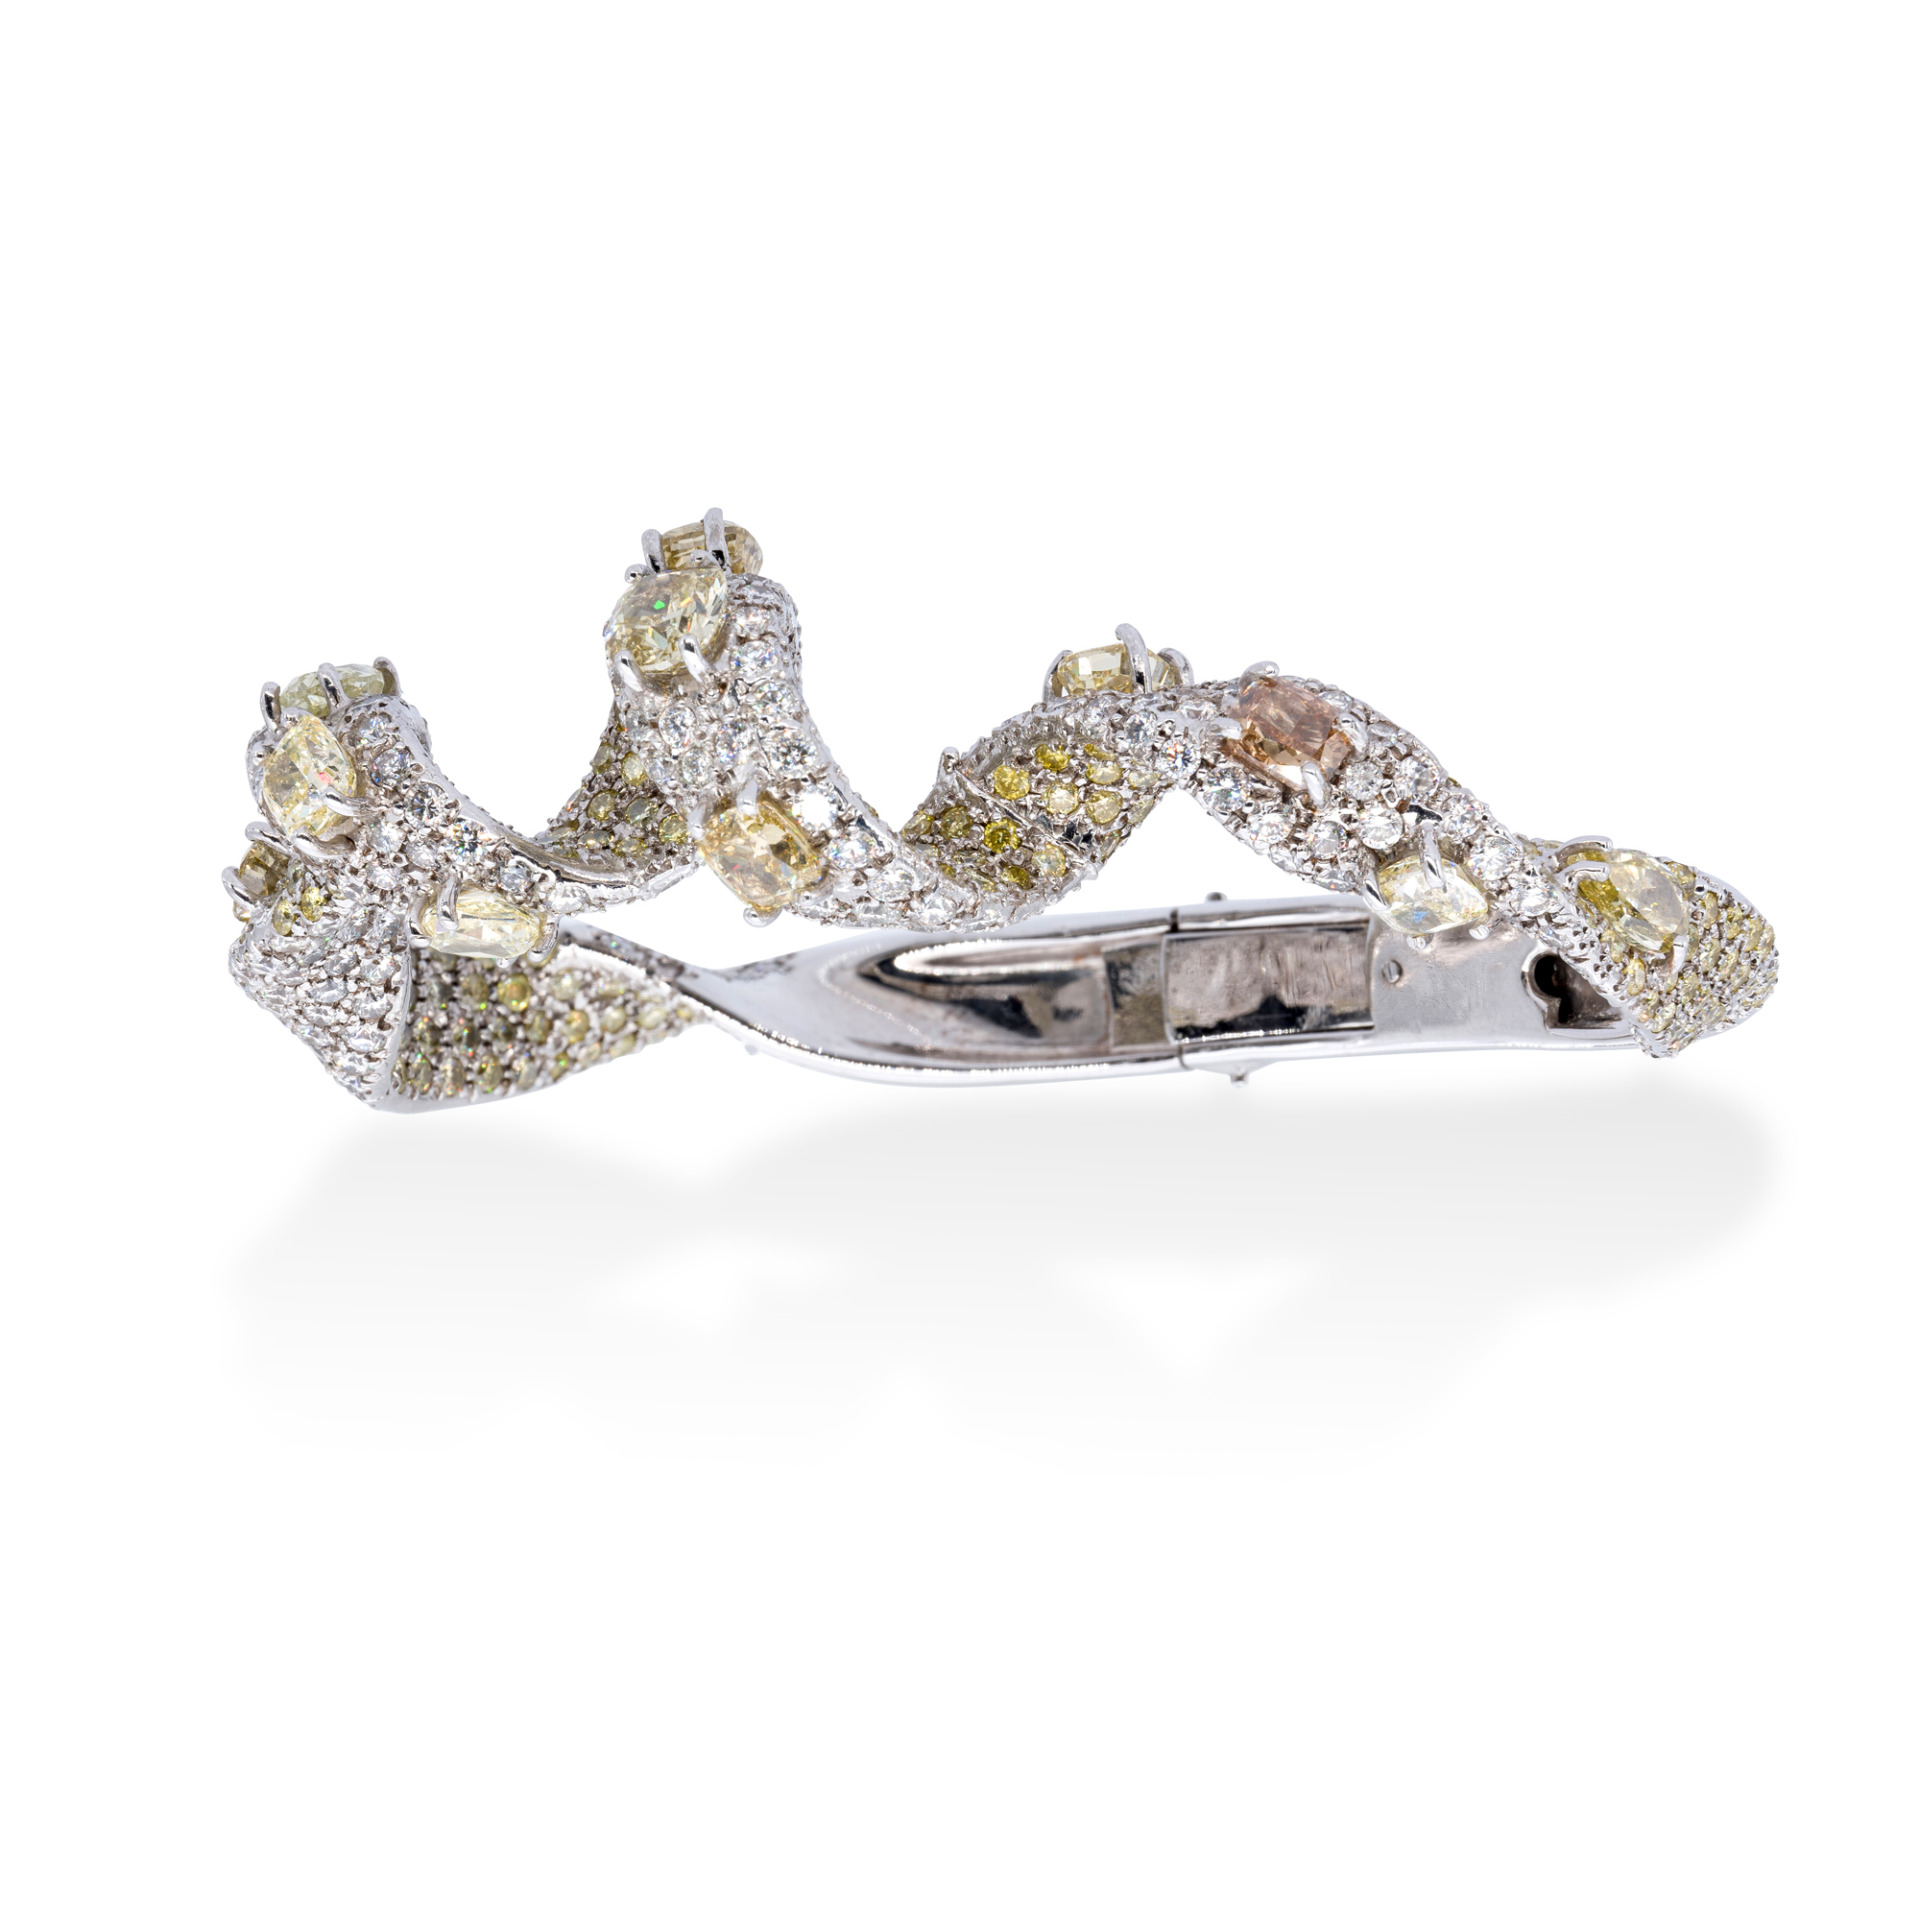 d'Avossa Bracelet, 18kt White Gold, with Fancy and White Diamonds